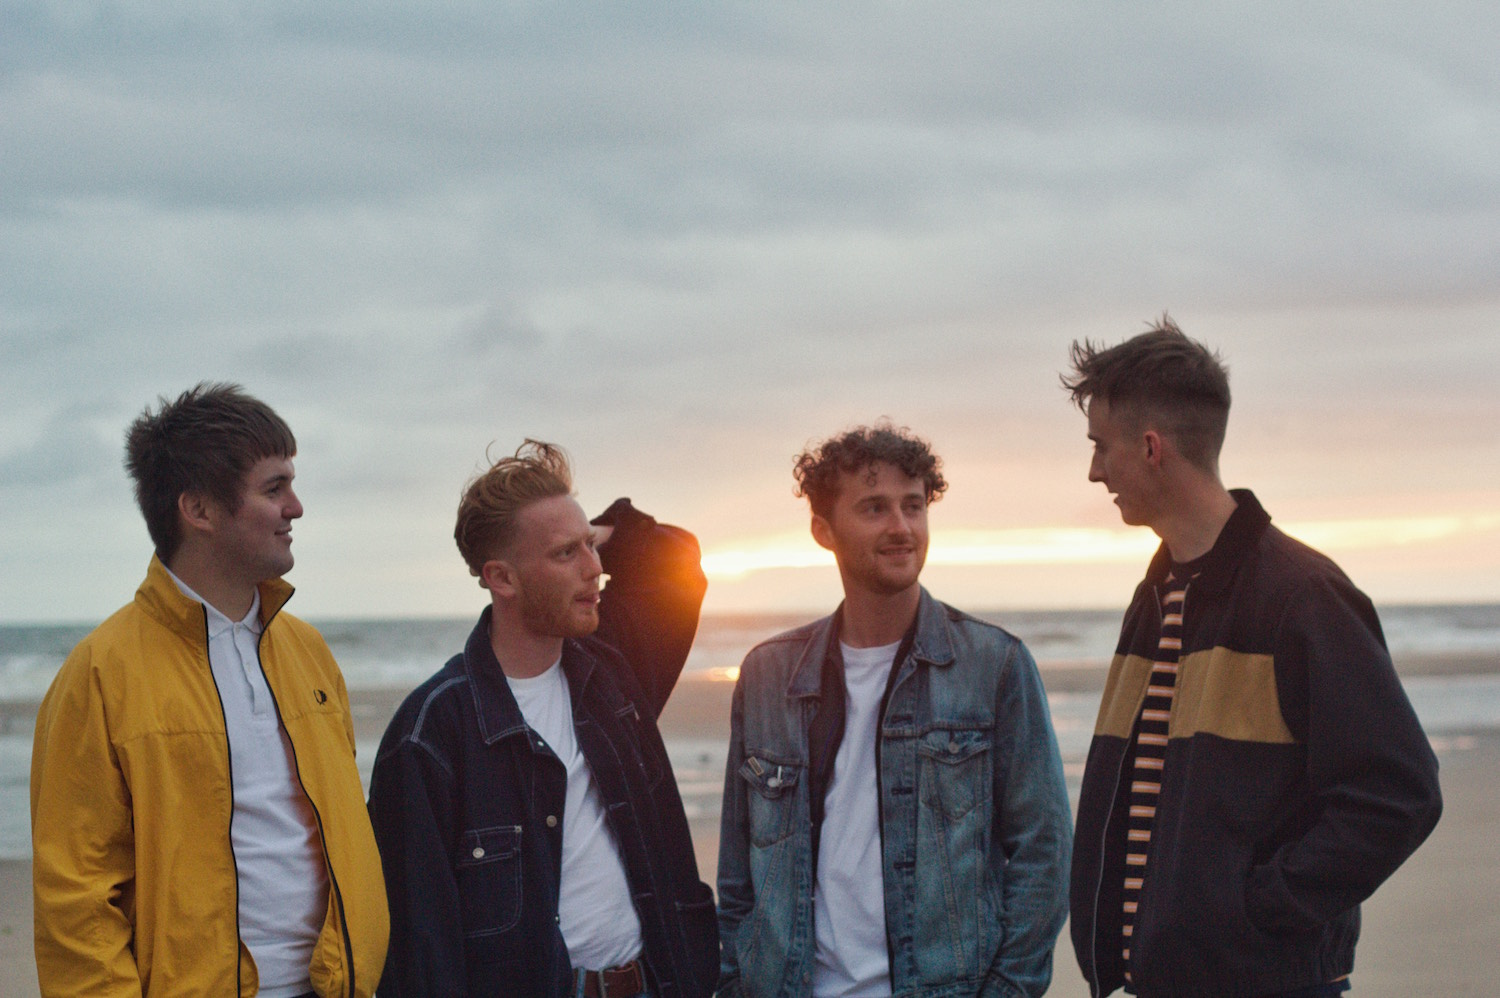 Liverpool's Bandit do Golden Age Indie on 'Peppermints Don't Hide Everything' | Gigwise